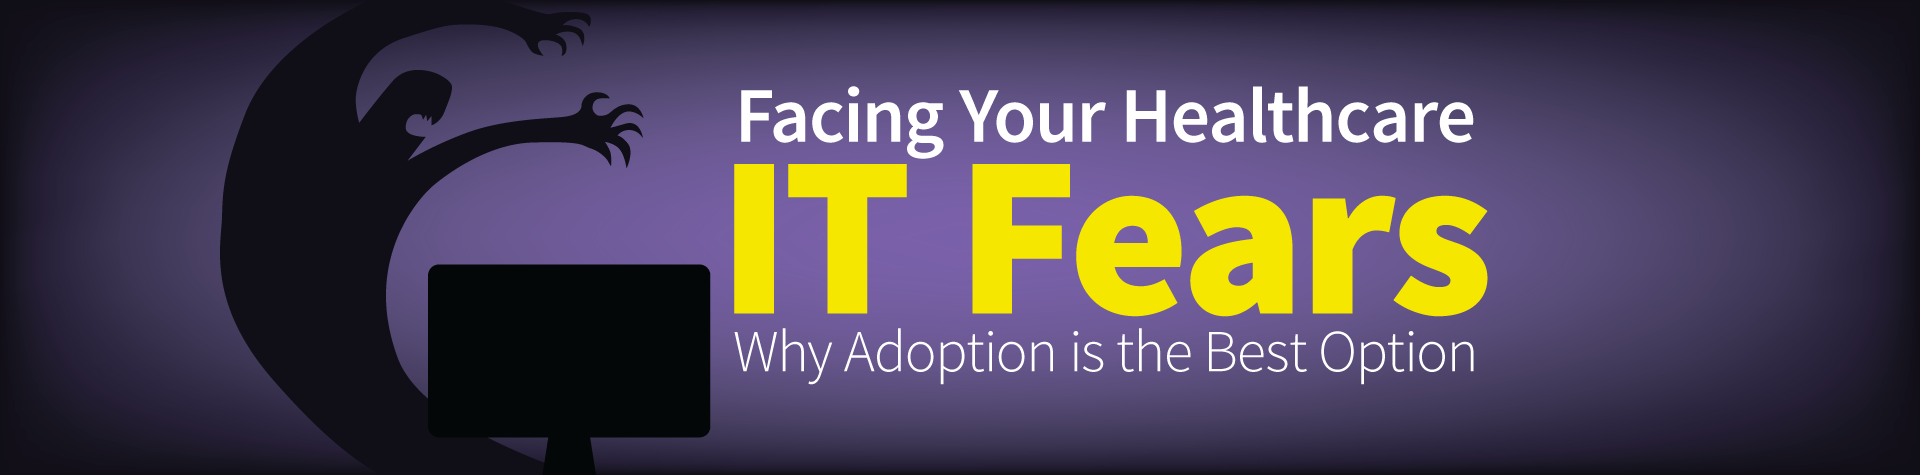 Face your healthcare IT Fears why adoption is the best option